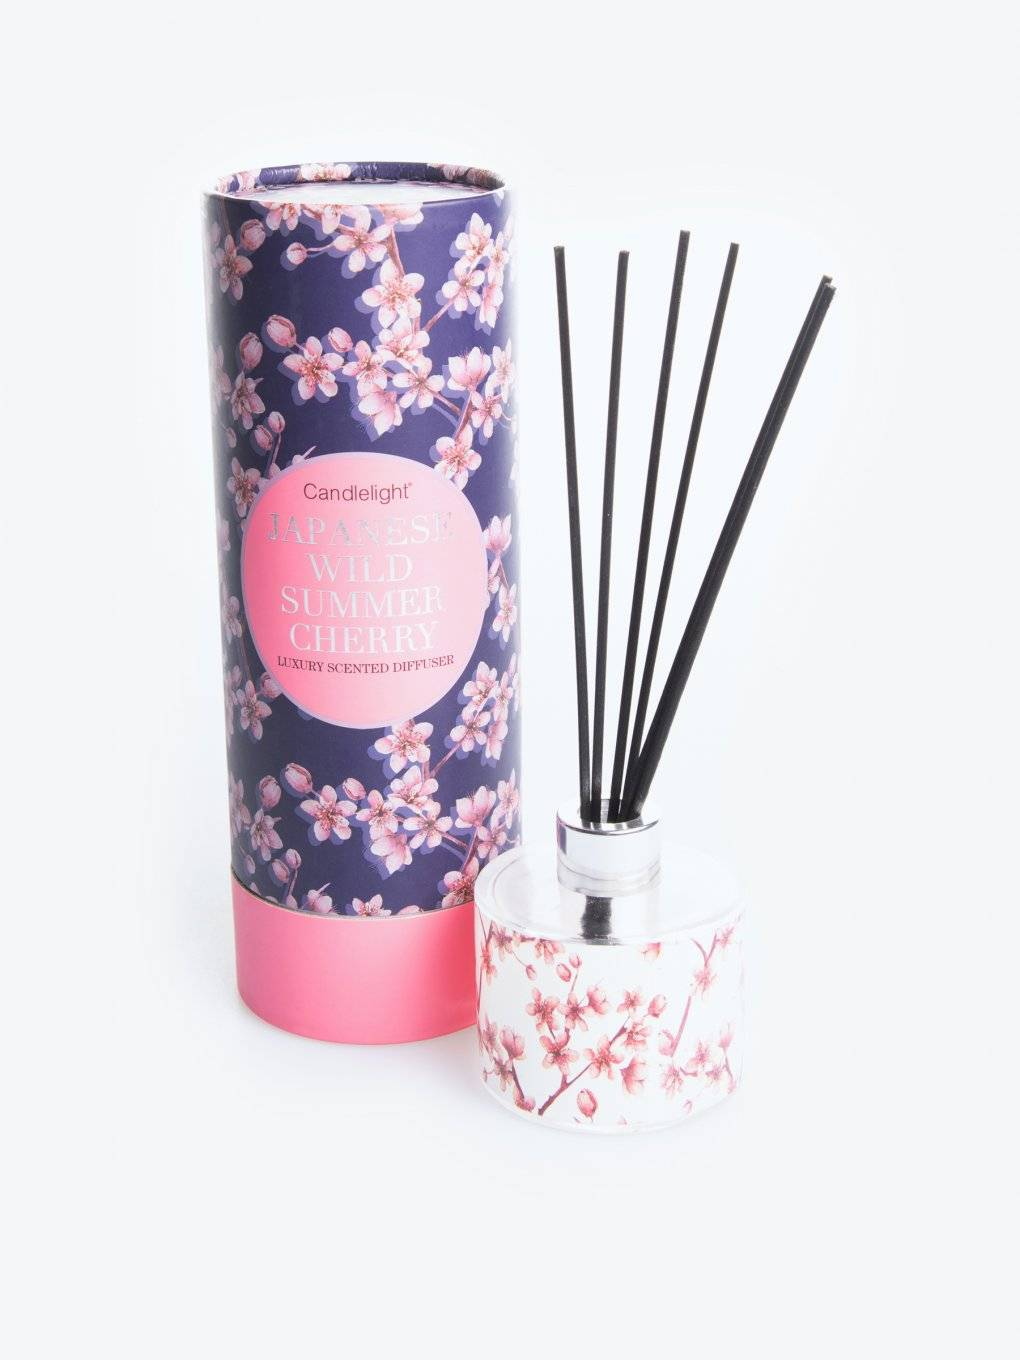 Japanese wild summer cherry fragrance diffuser in box